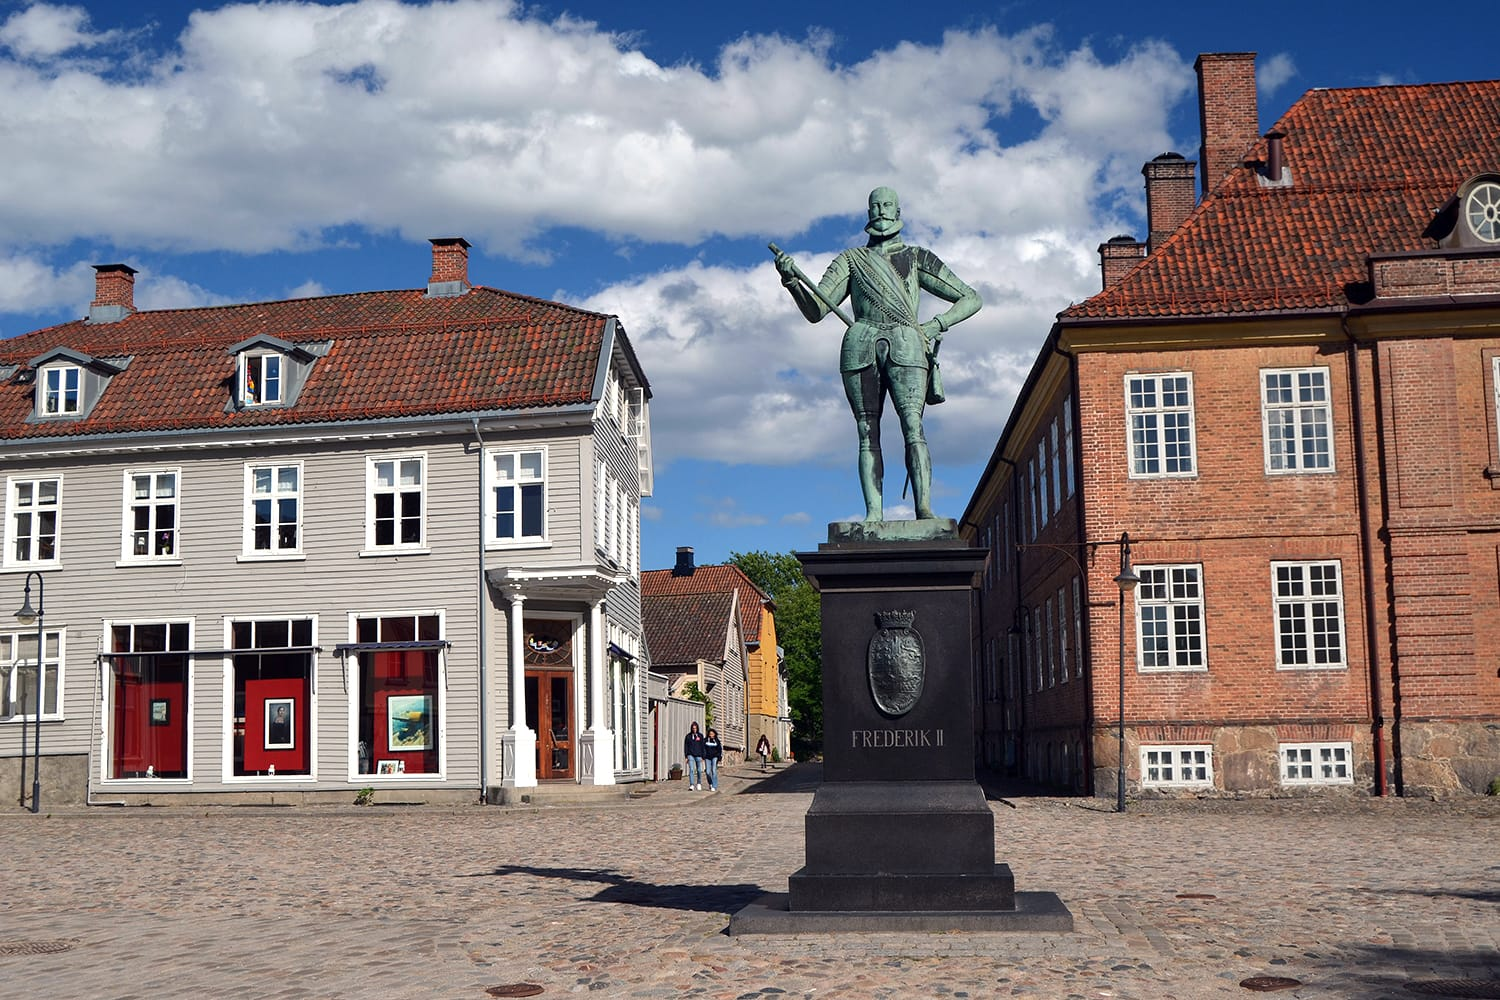 Square in Fredrikstad, Norway